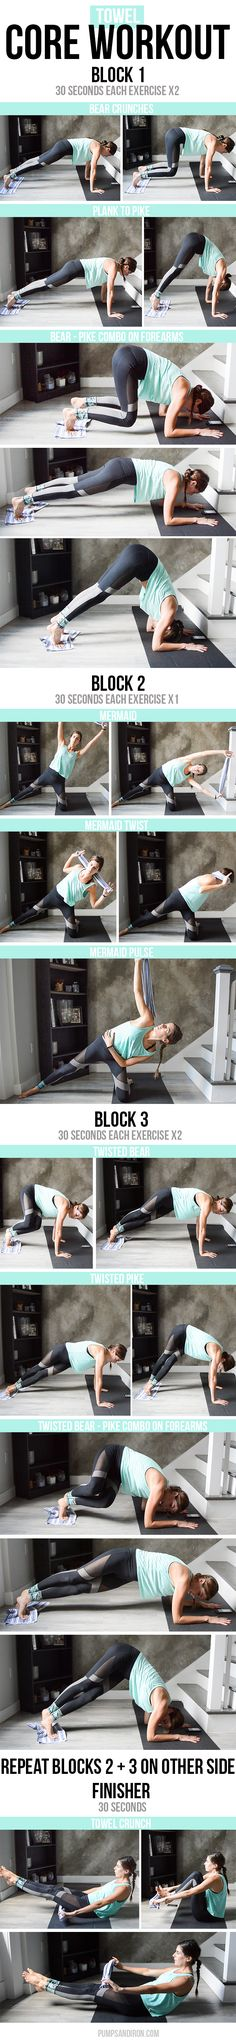 15-Minute Towel Core Workout - a mix of sliding plank work and kneeling core…